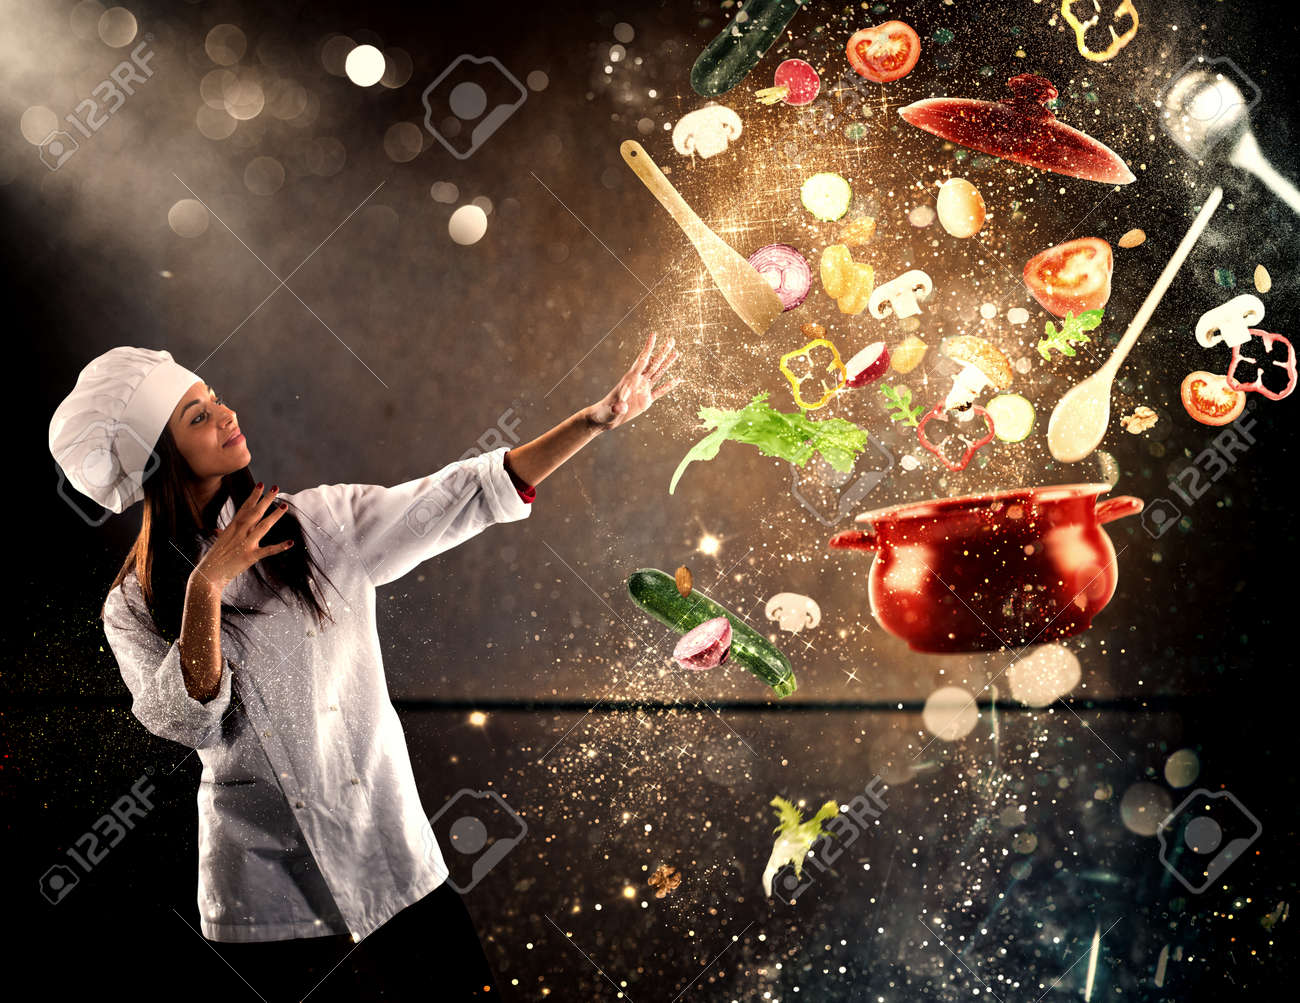 Magic chef ready to cook a new dish - 86541016